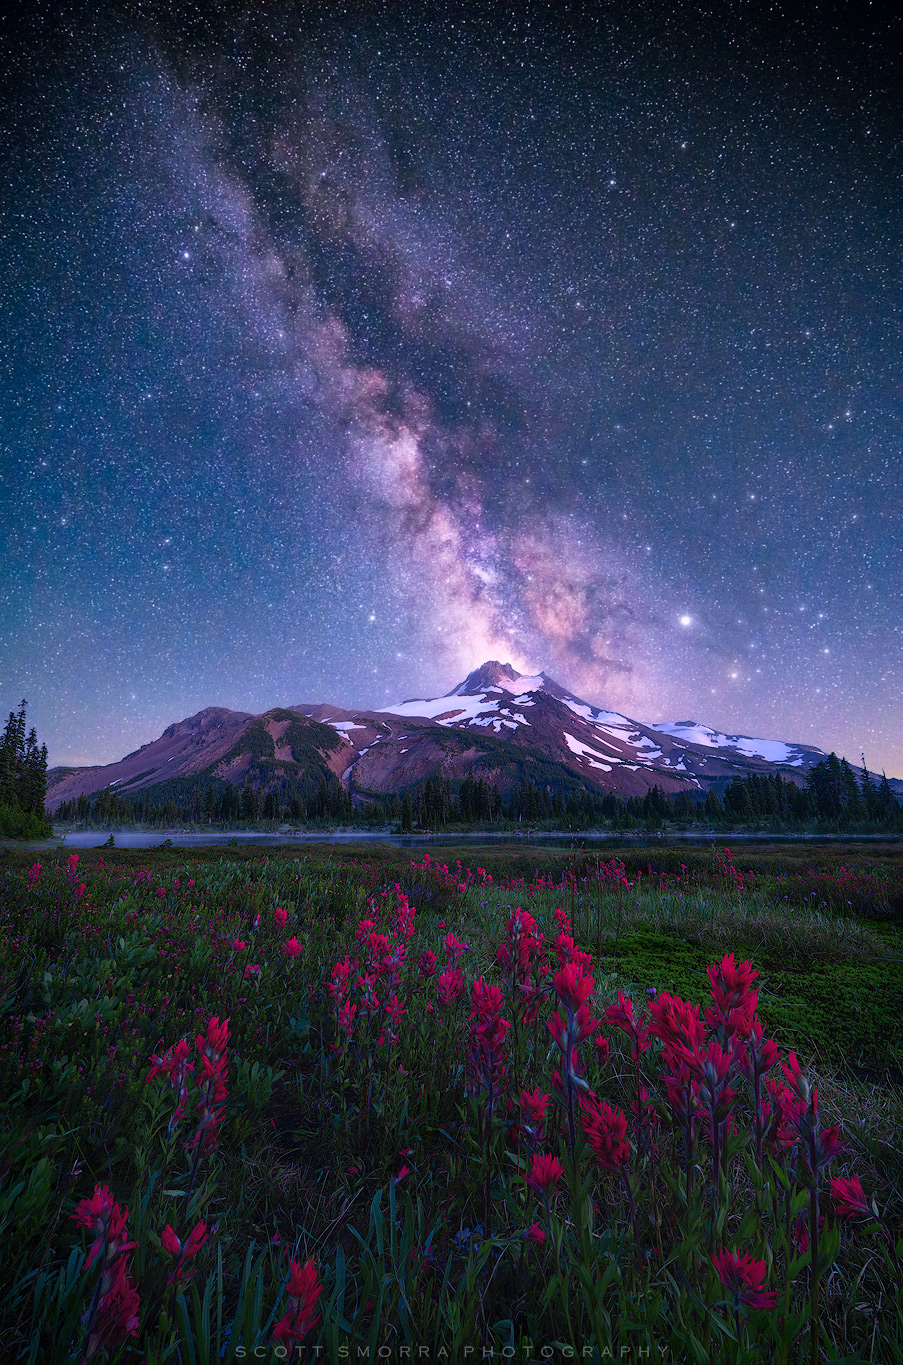 Fine Art Limited Edition of 100 - The Milky Way and millions of other stars rise above Mt Jefferson, an alpine lake and a field...